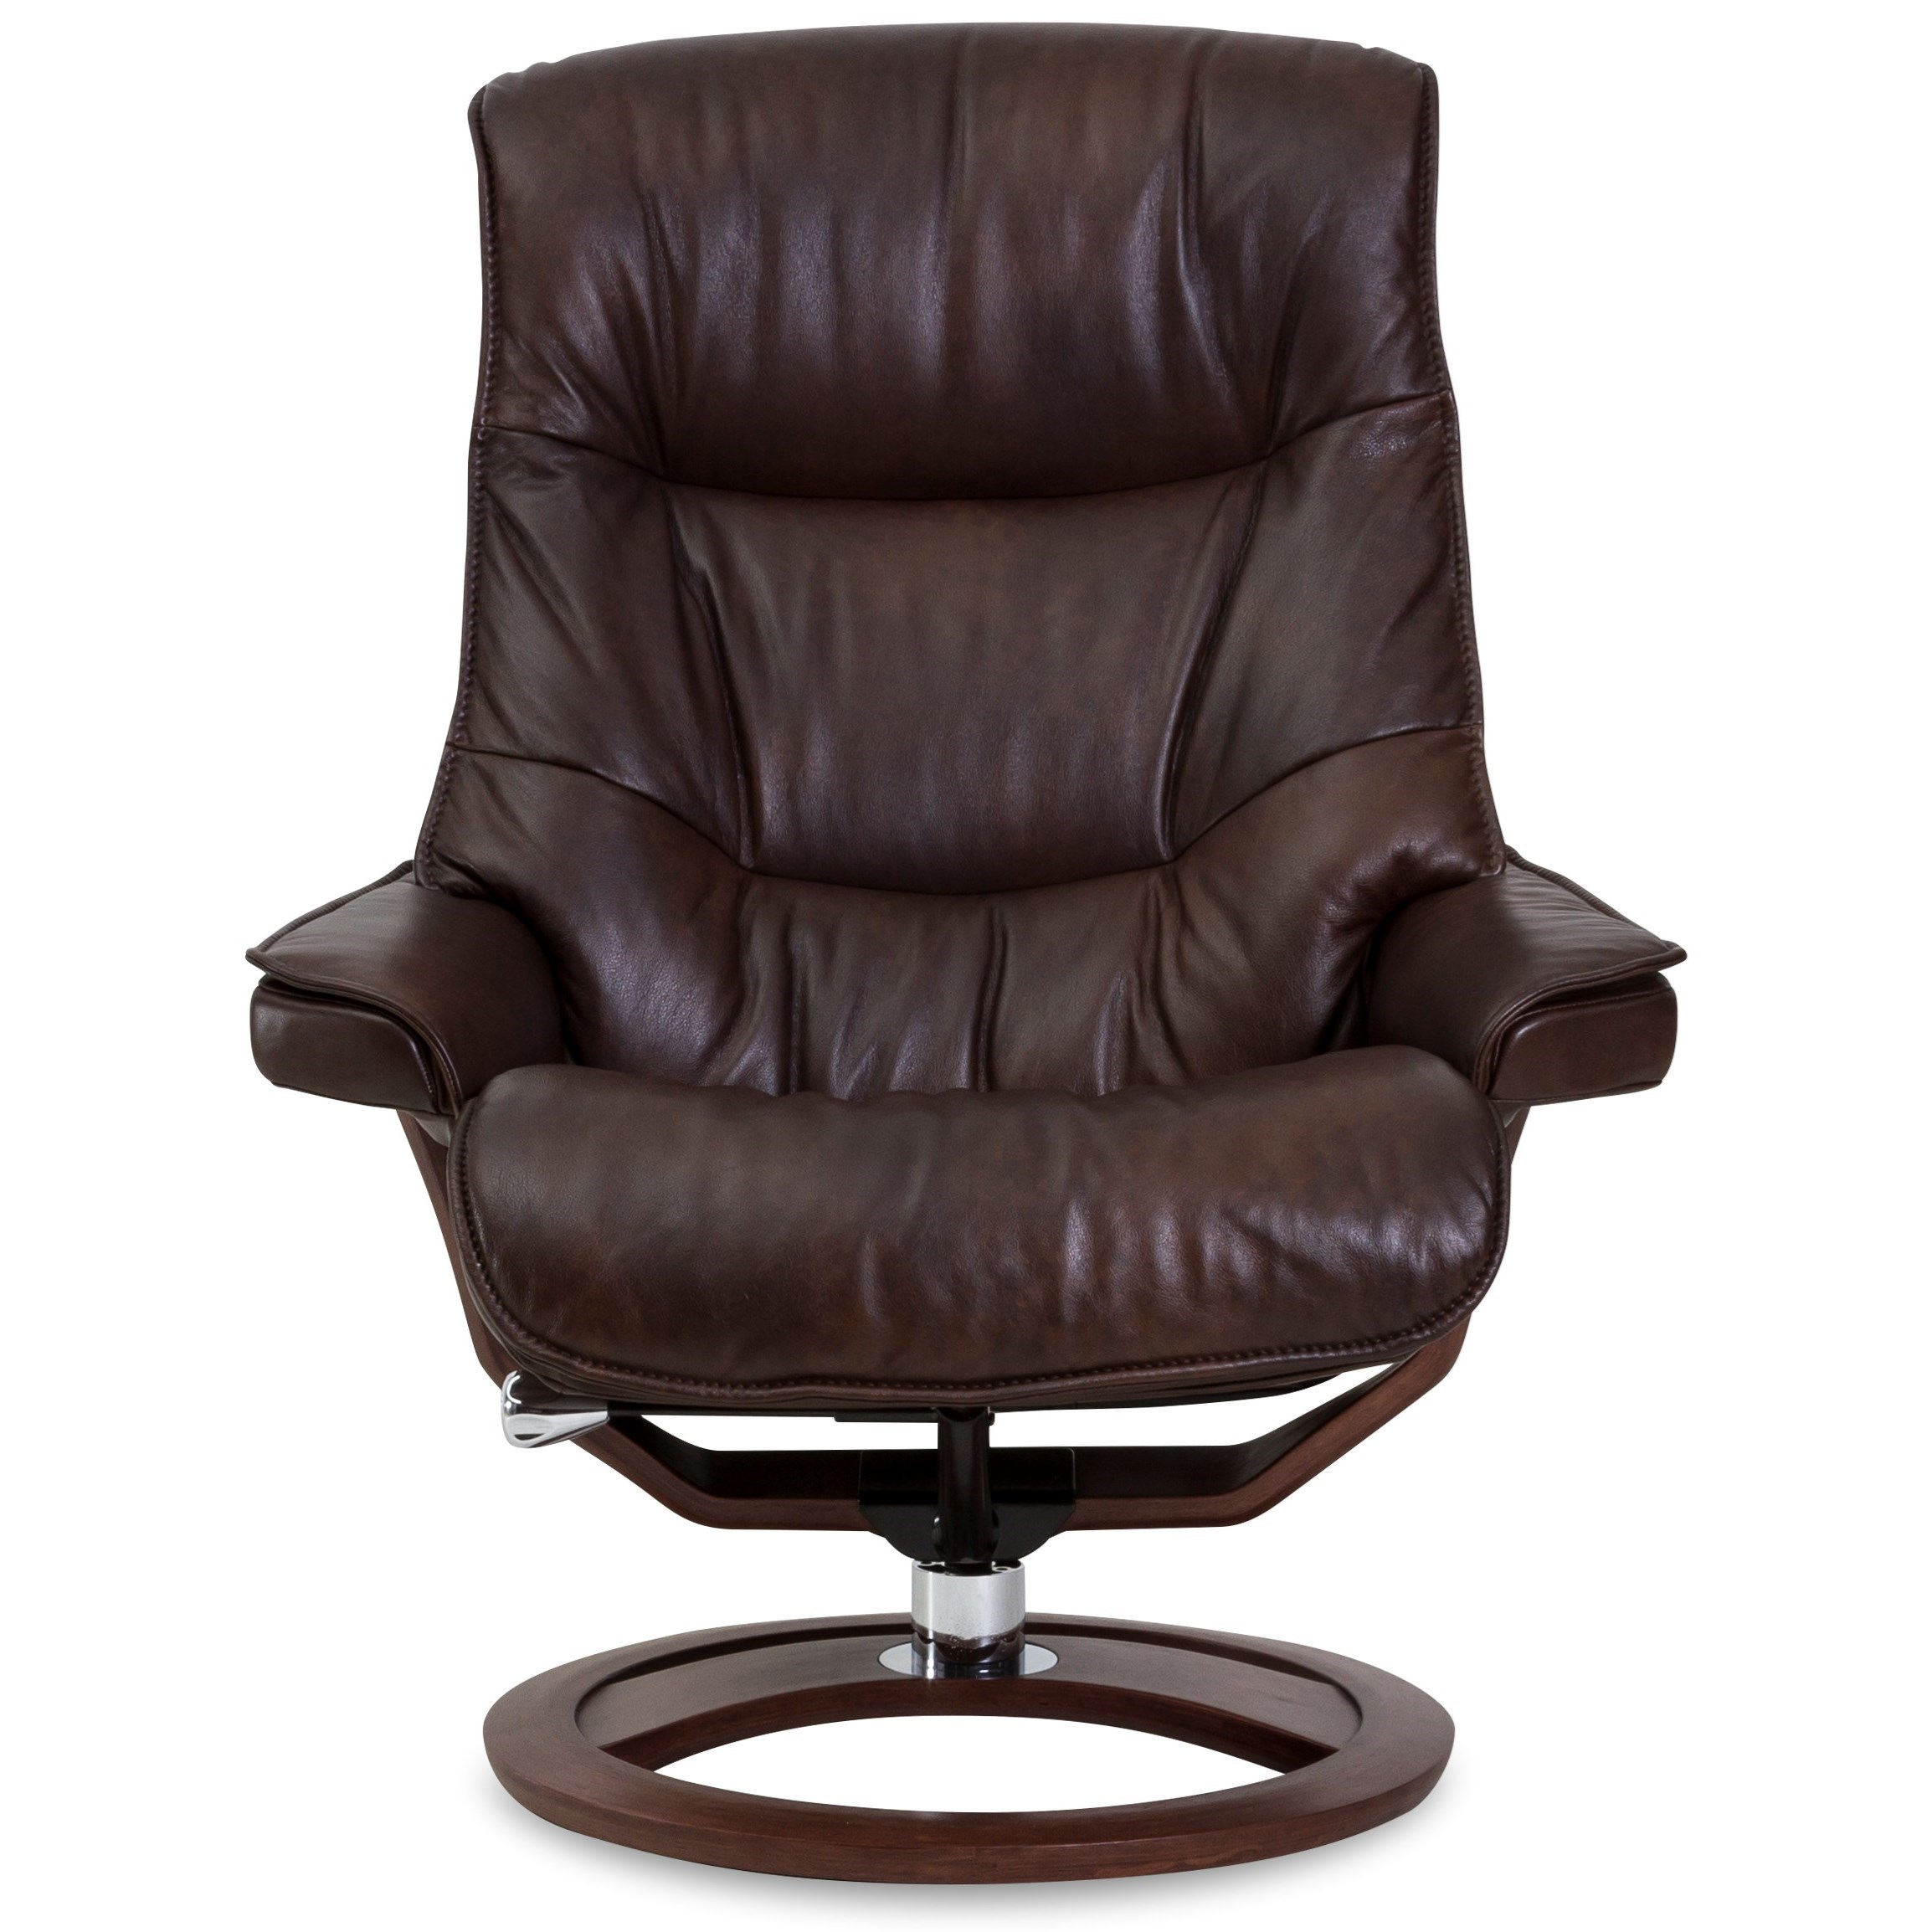 Wide Chair And Ottoman Img Norway Regal Large Cortina Recliner And Ottoman